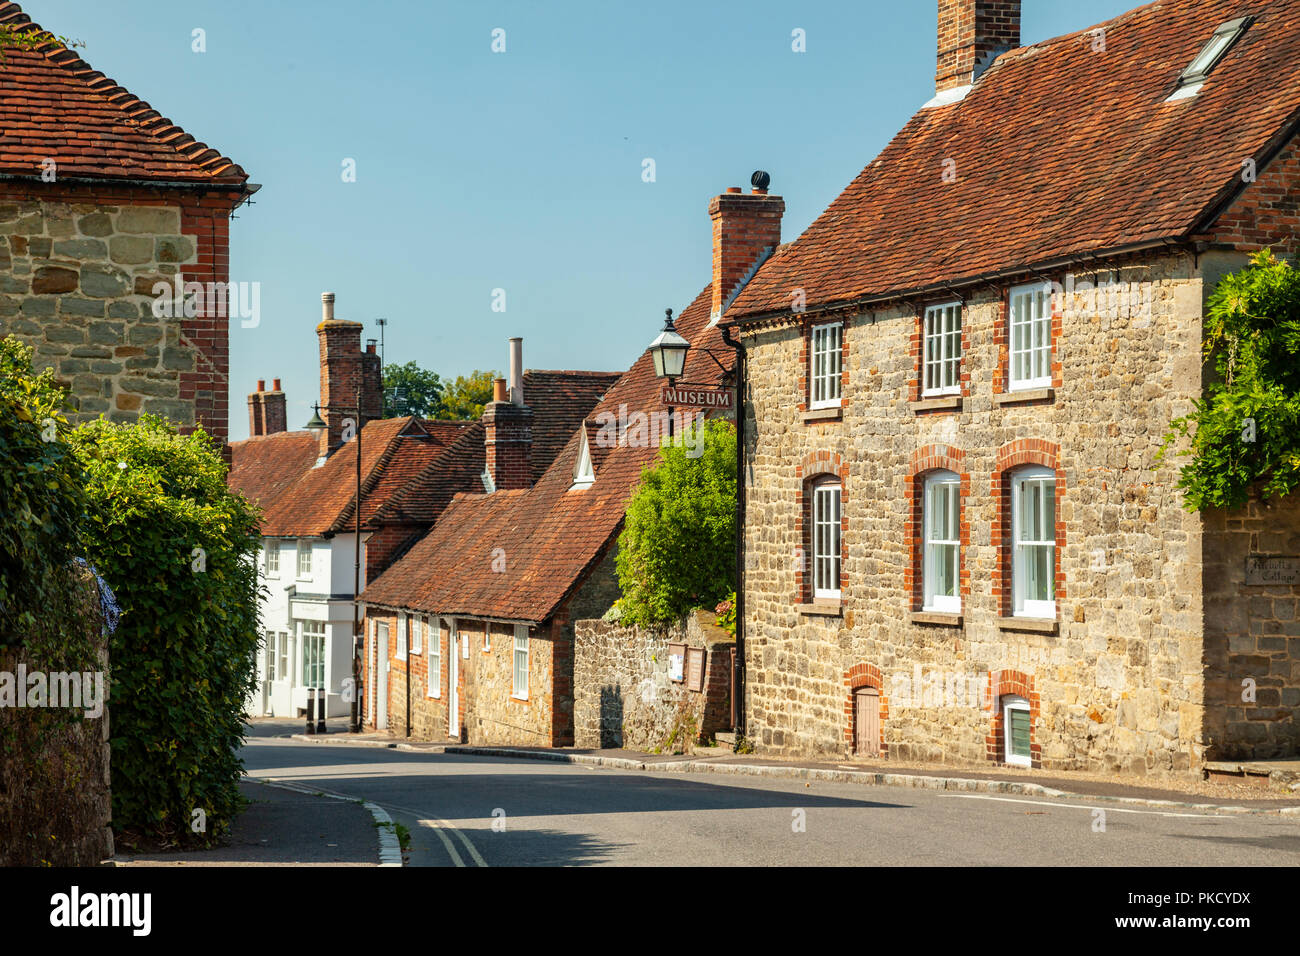 Summer afternoon in Petworth, West Sussex, England. - Stock Image